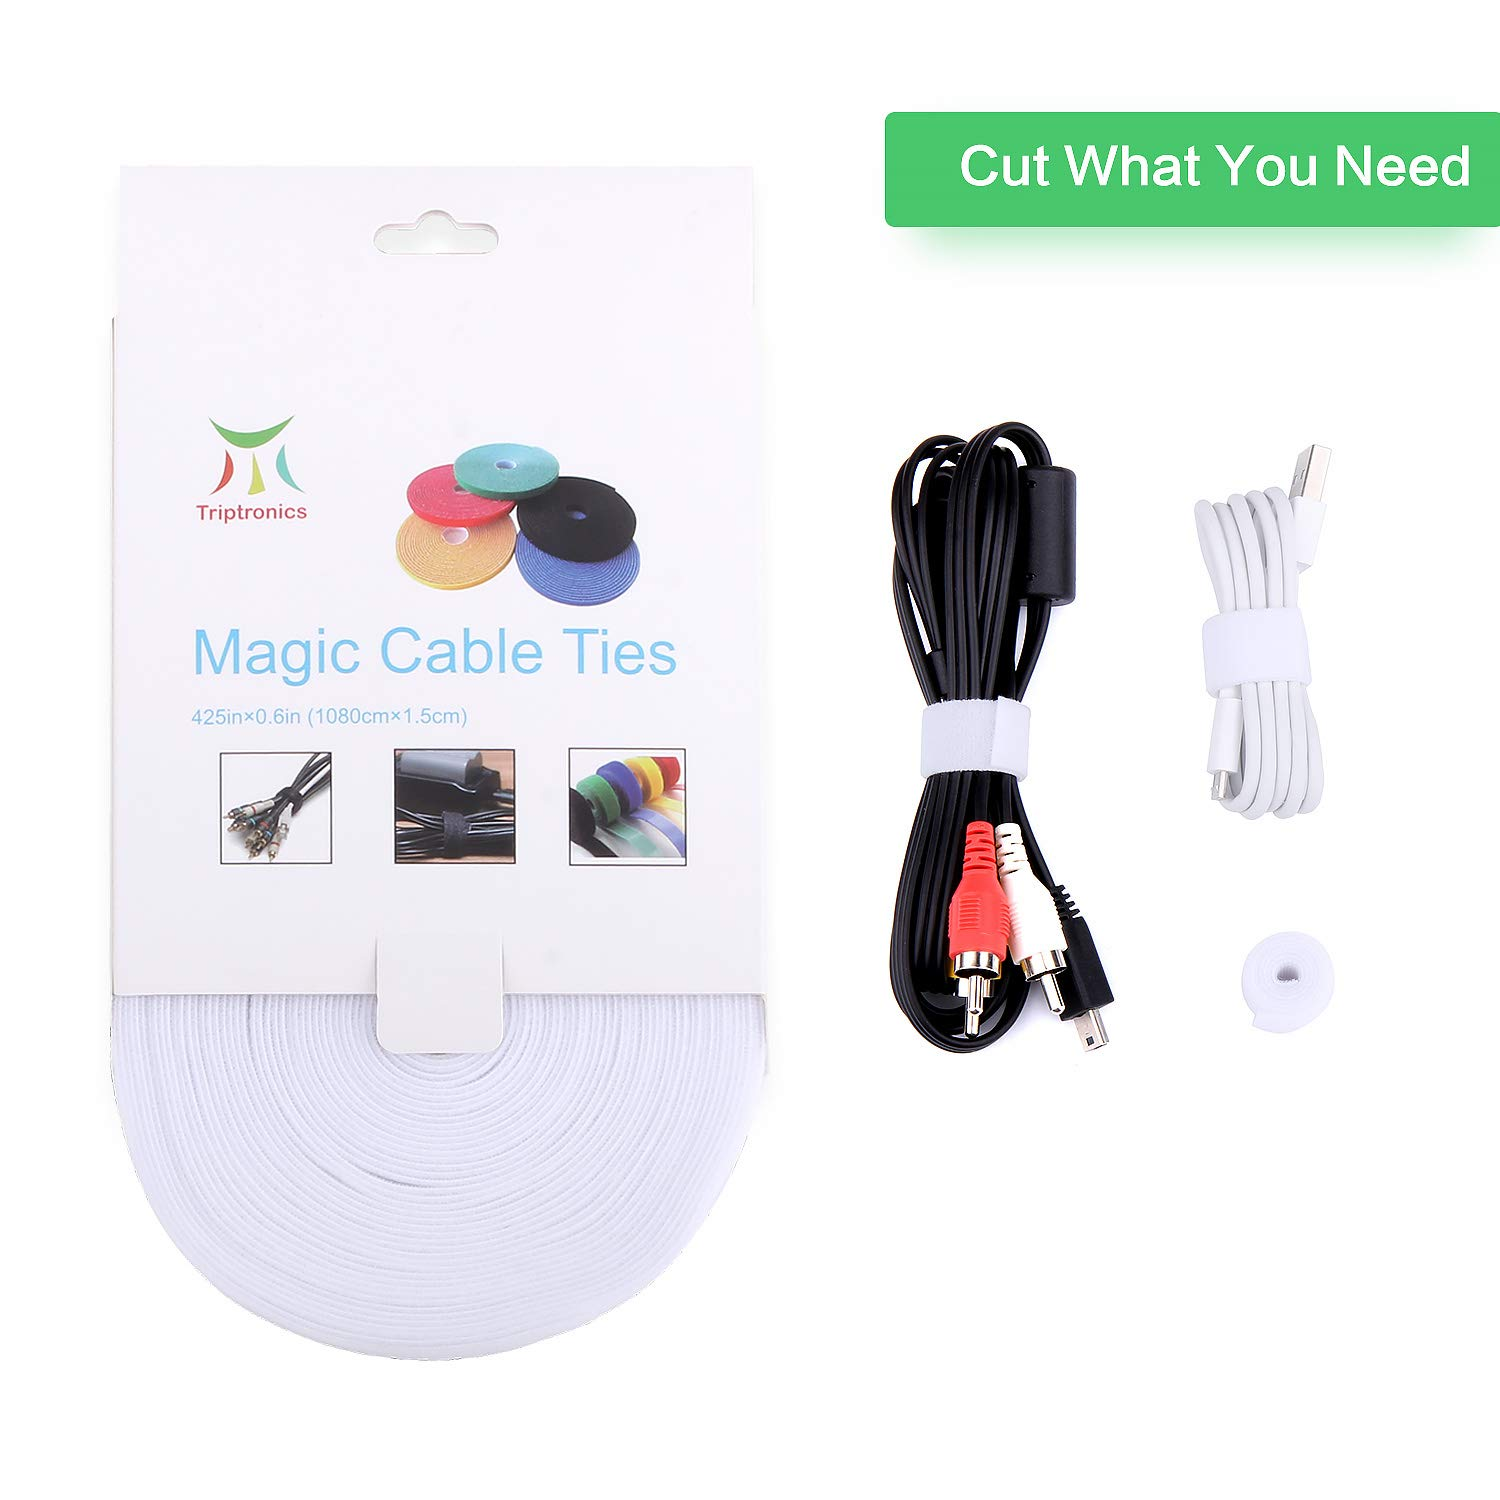 Roll Reusable Cord Organizer Keeper Holder Fastening Cable Ties Straps for Earbud Headphones iPhone Wire Wrap Management Hook and Loop Roll Cable Management … White